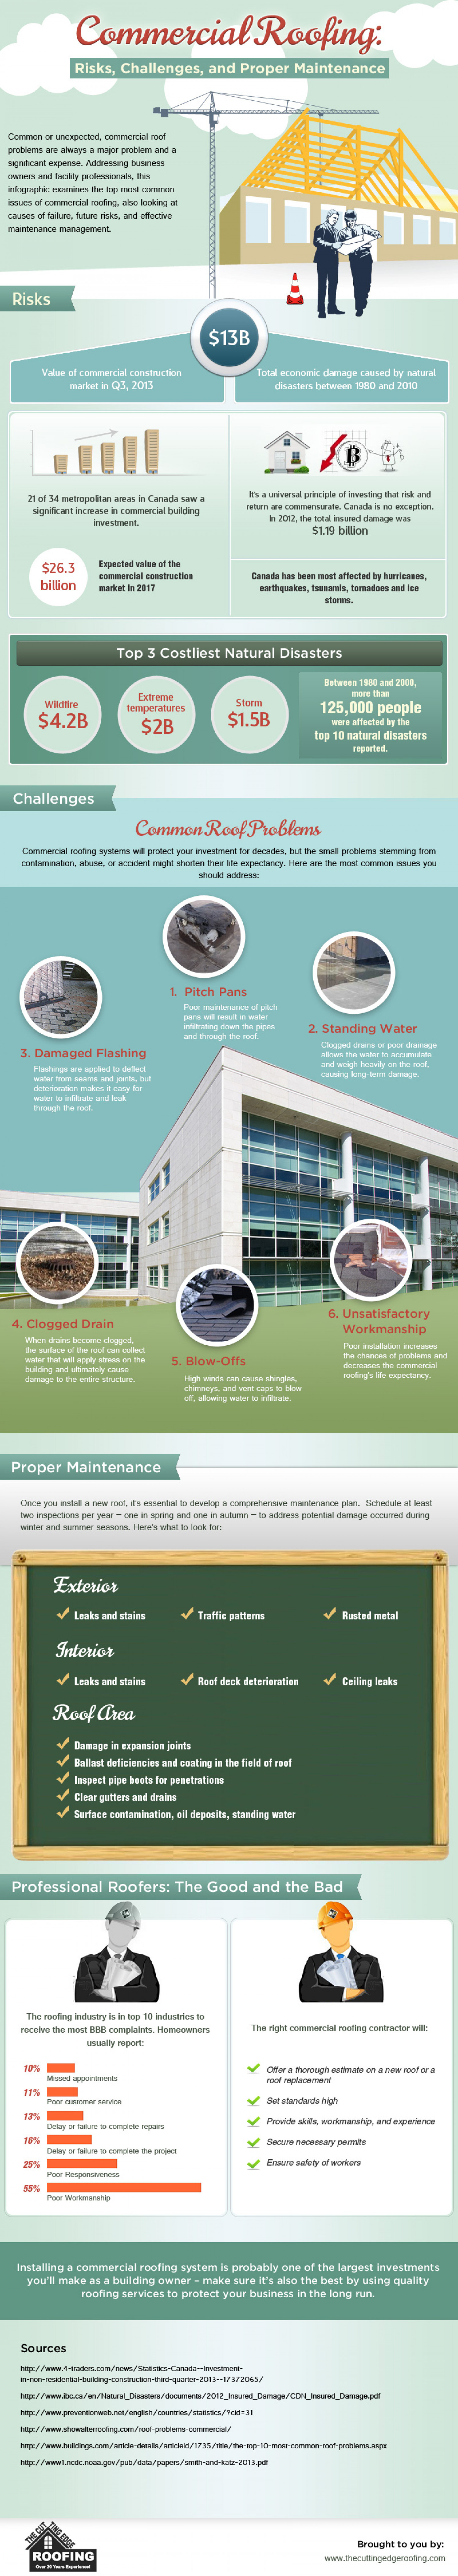 Commercial Roofing: Risks, Challenges and Proper Maintenance Infographic